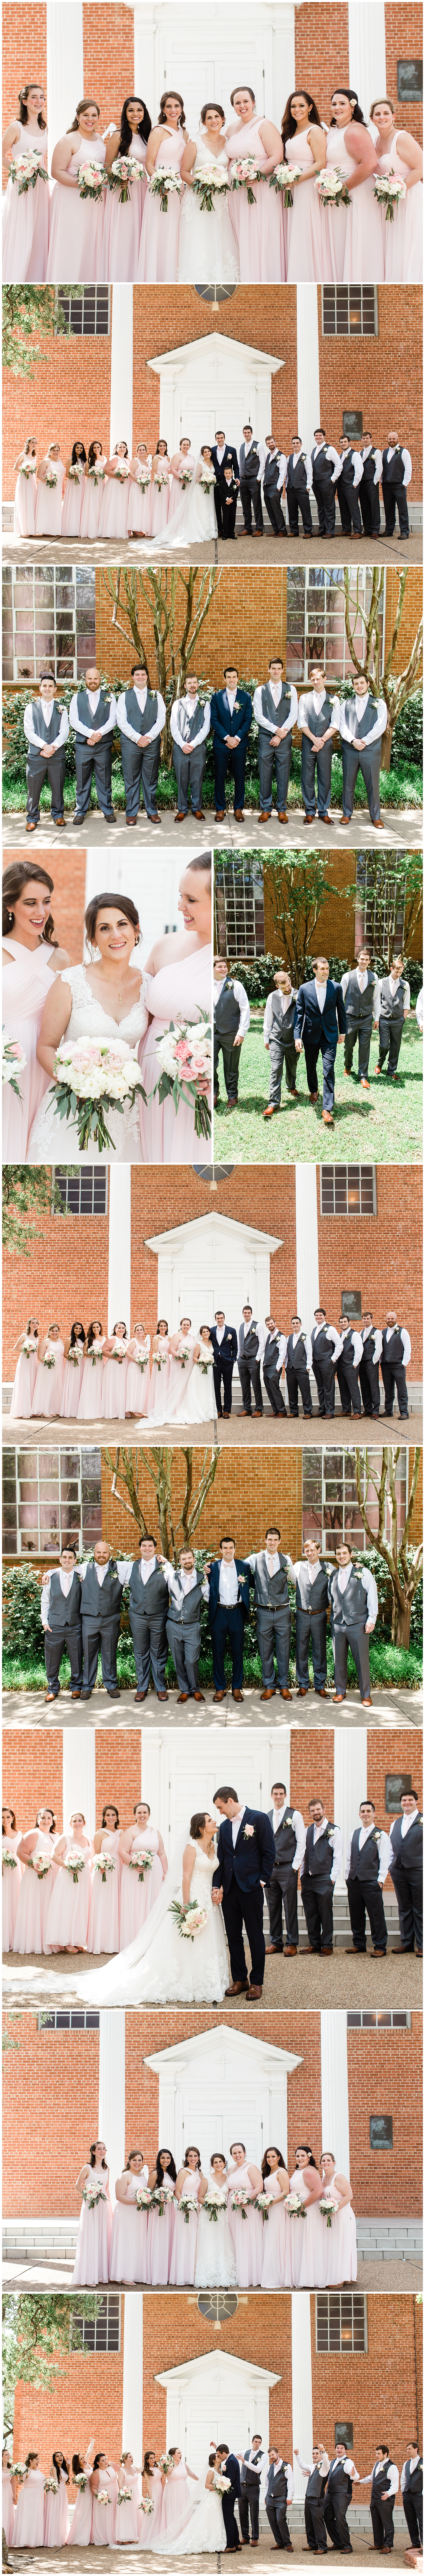 College_Station_Wedding_Photographer_0010.jpg